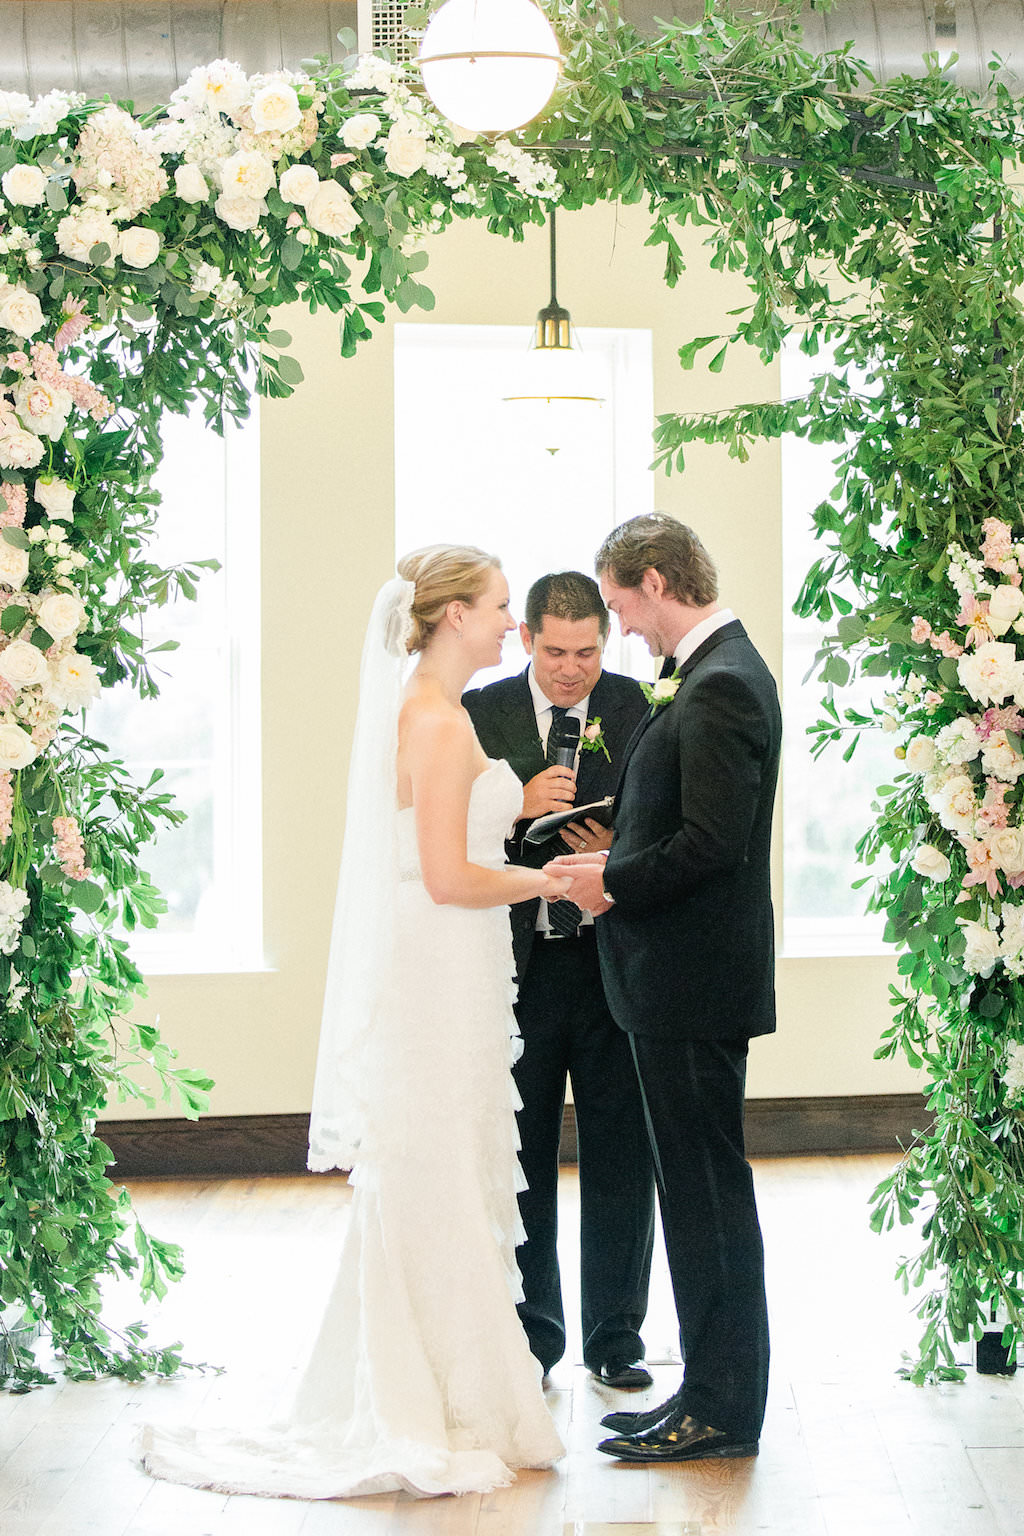 Indoor Industrial Garden Wedding Ceremony Portrait, with Greenery and White Floral Arch   Tampa Bay Wedding Photographer Ailyn La Torre   Venue The Oxford Exchange